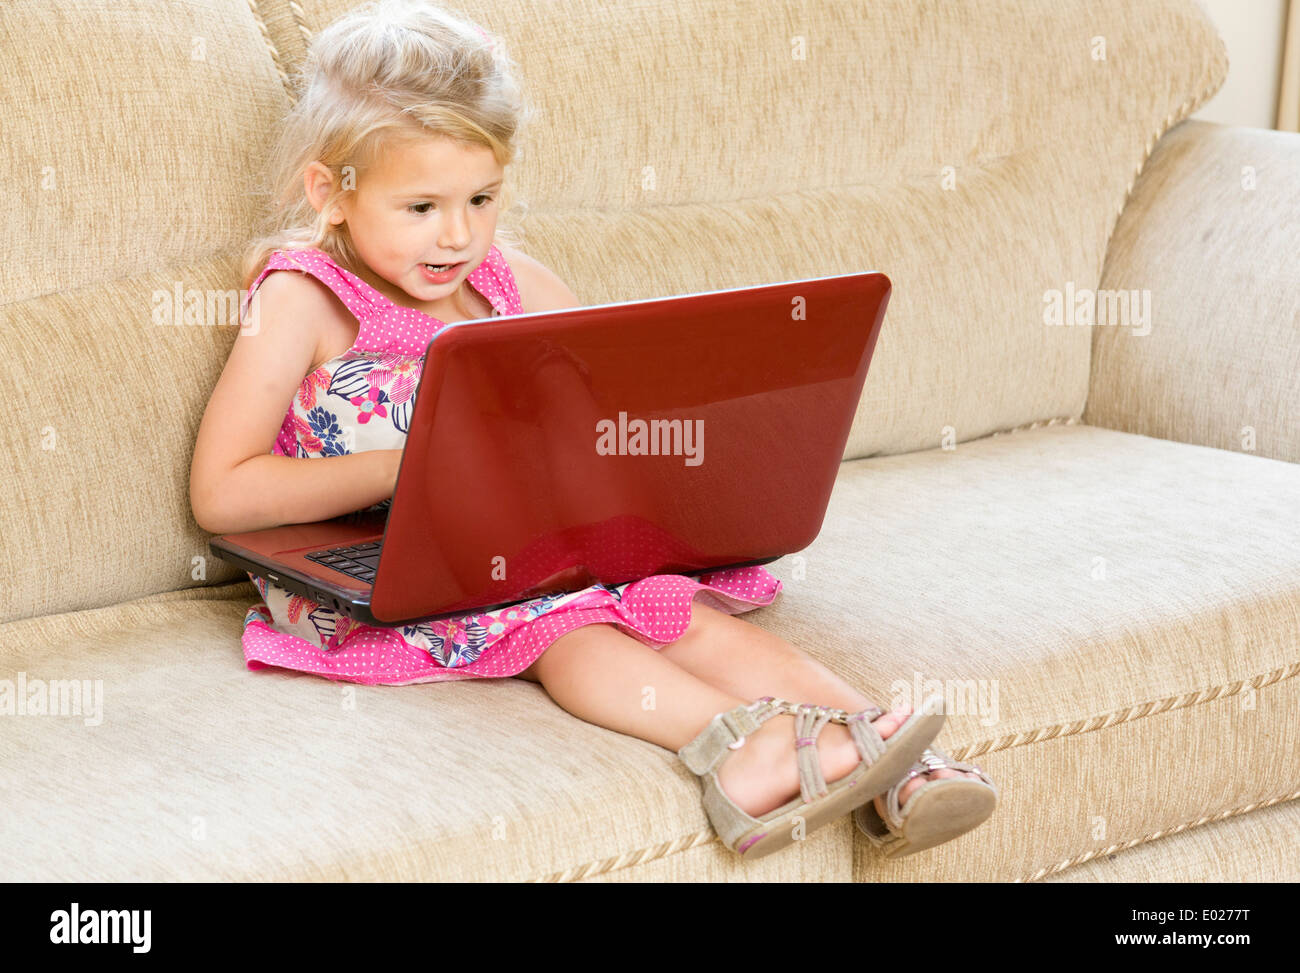 young girl using laptop computer - Stock Image